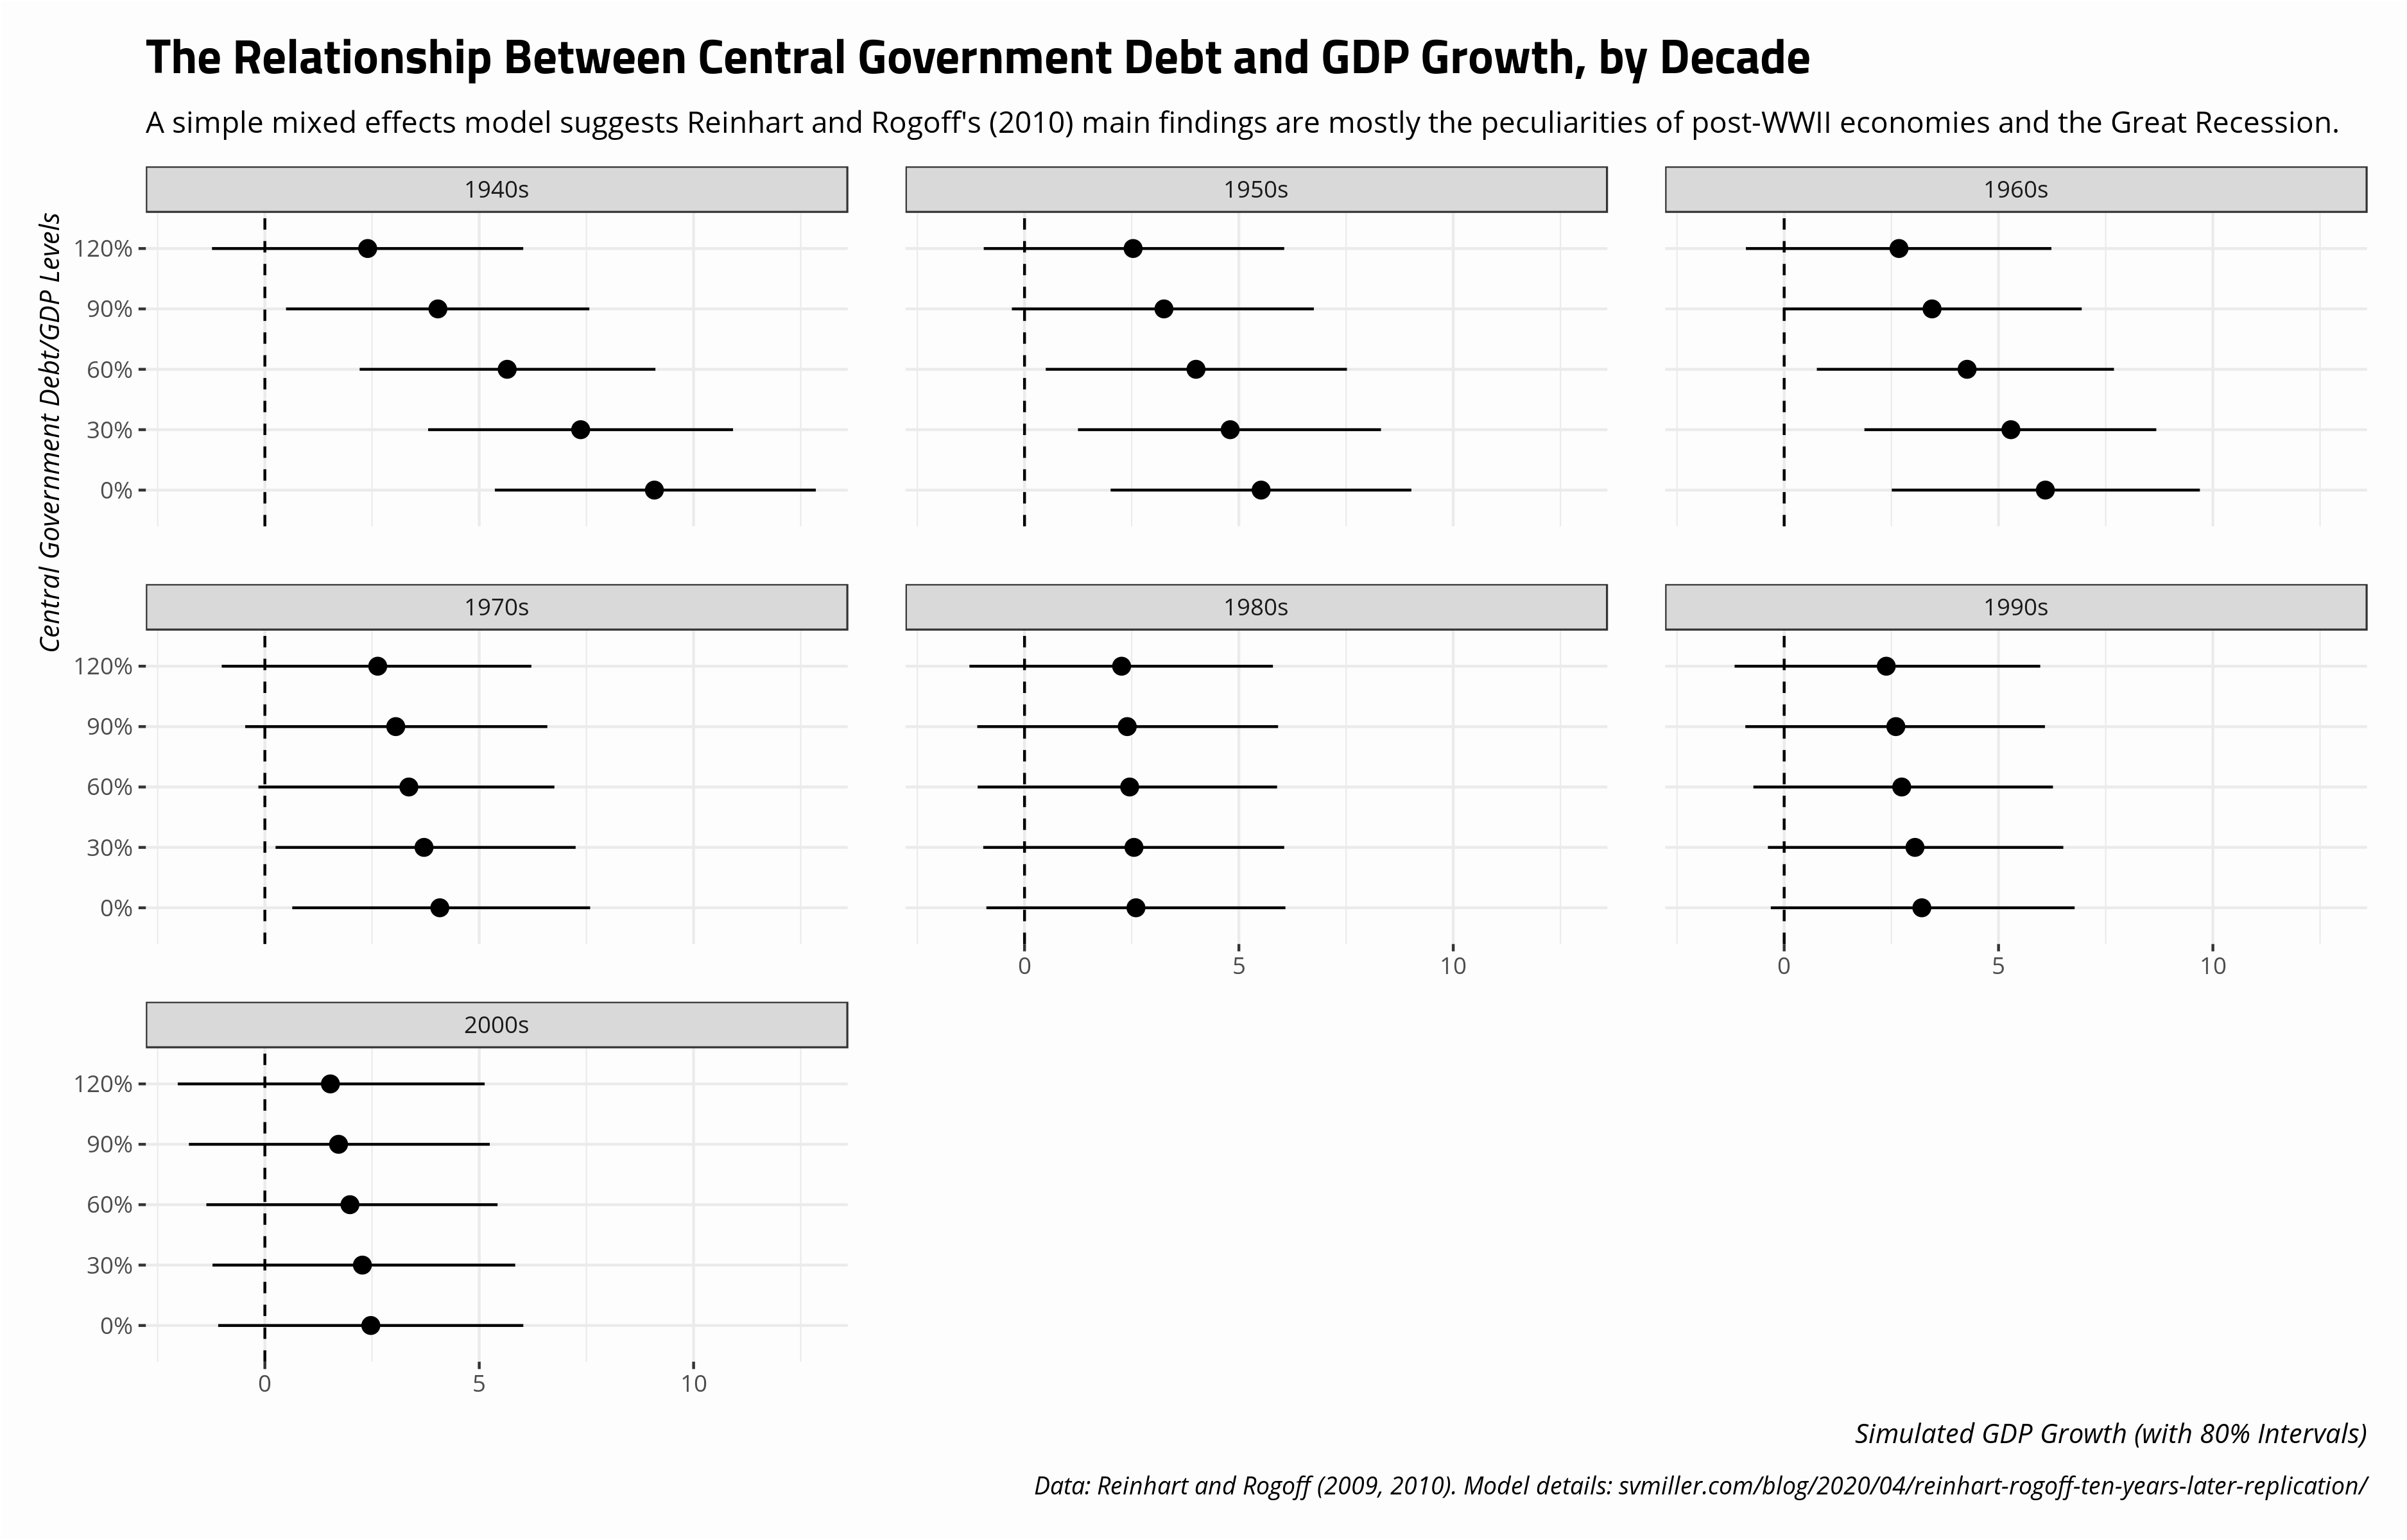 plot of chunk relationship-between-debt-real-gdp-growth-by-decade